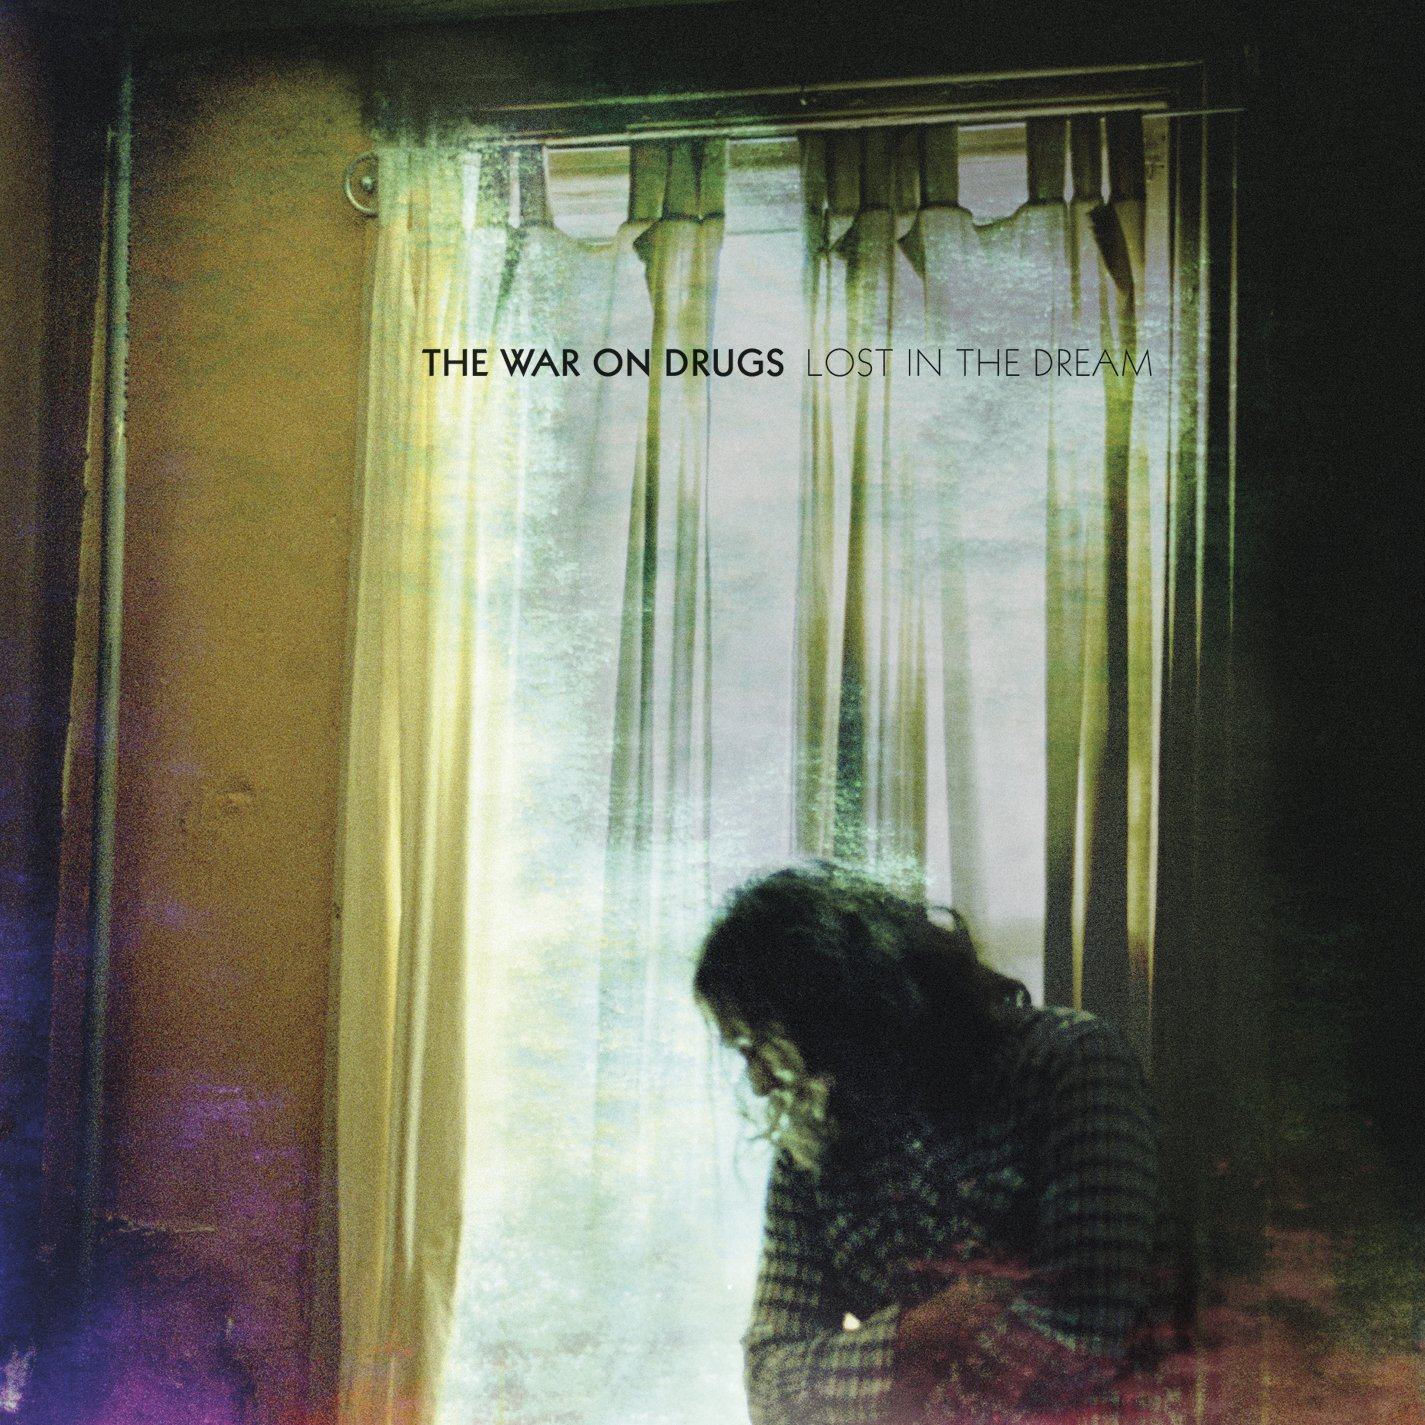 The War on Drugs, Lost in the Dream